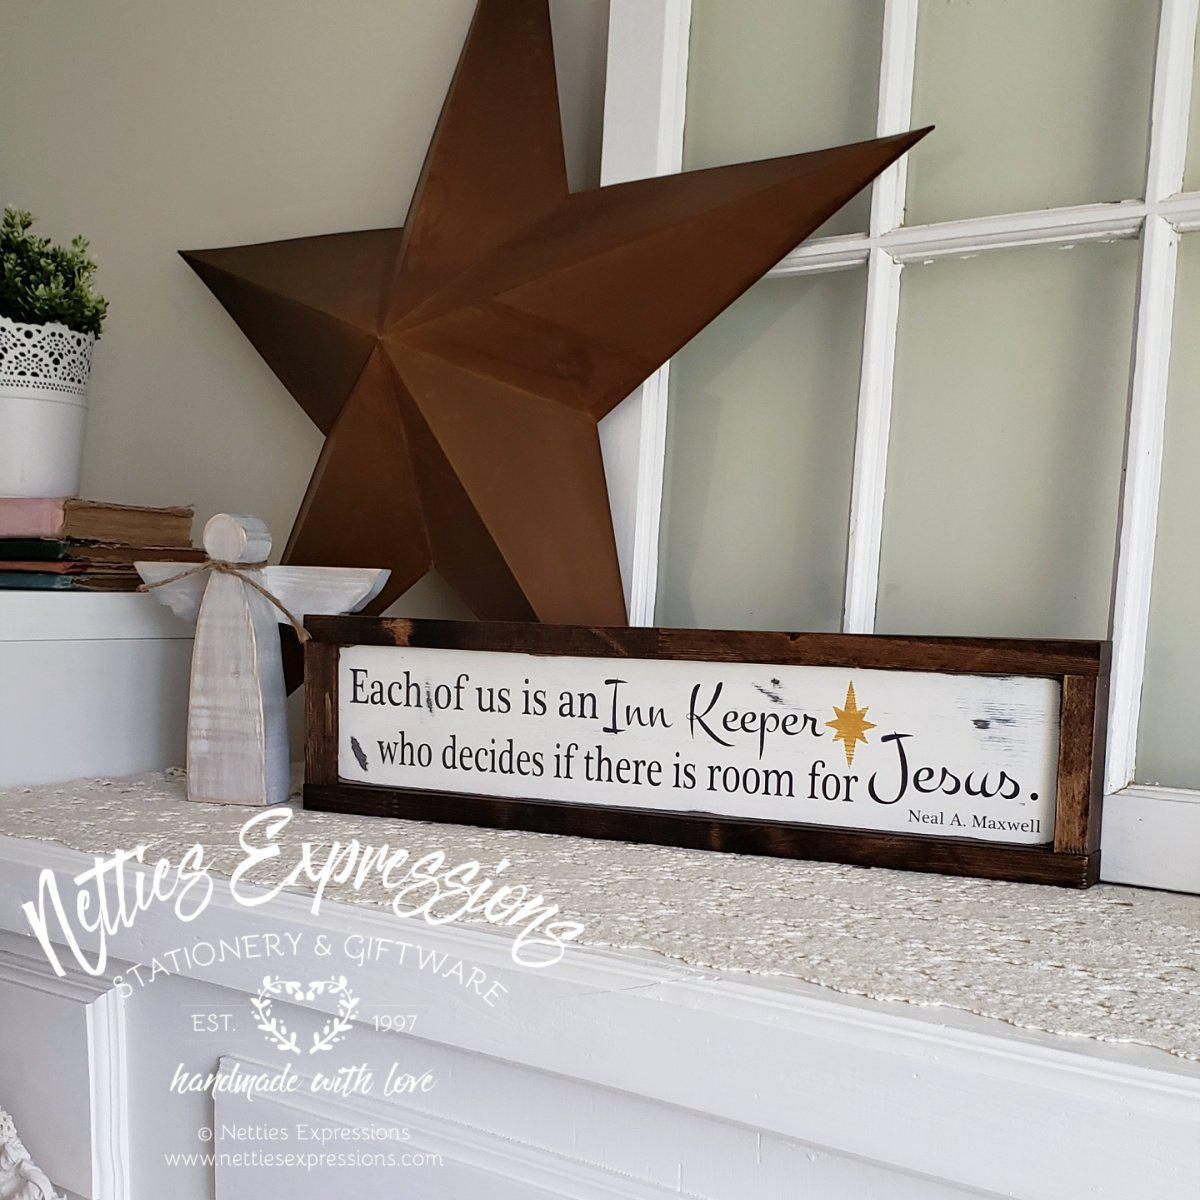 Each of us is an Inn Keeper - Rustic Framed Wood Christmas Sign - Netties Expressions